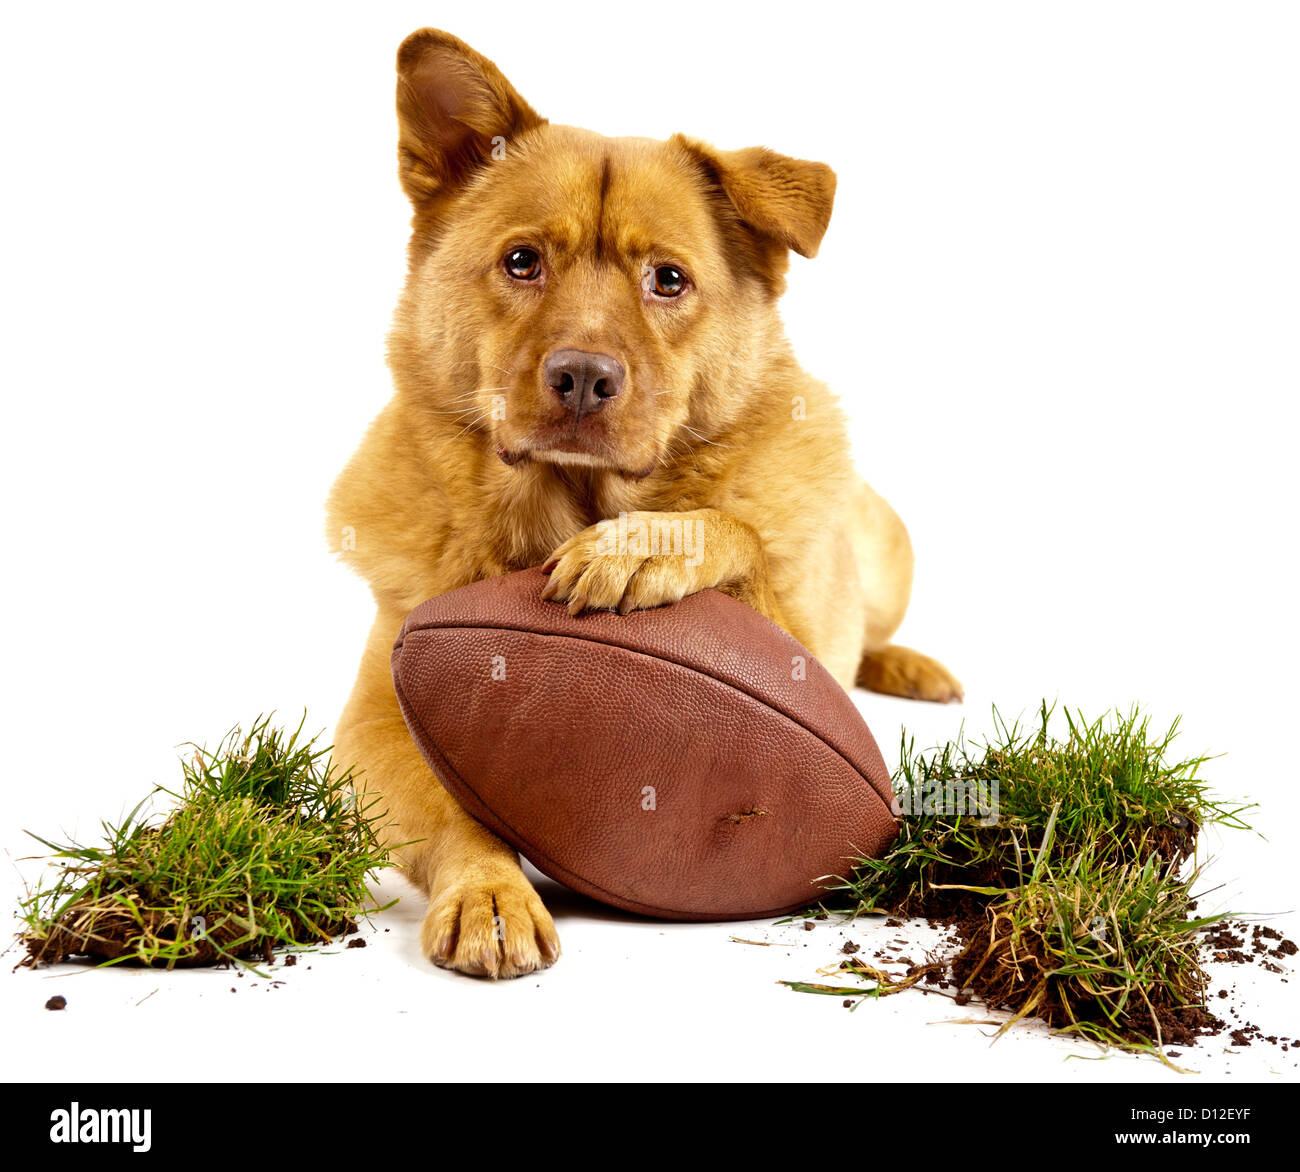 dog posing with football and grass turf. Isolated on white - Stock Image